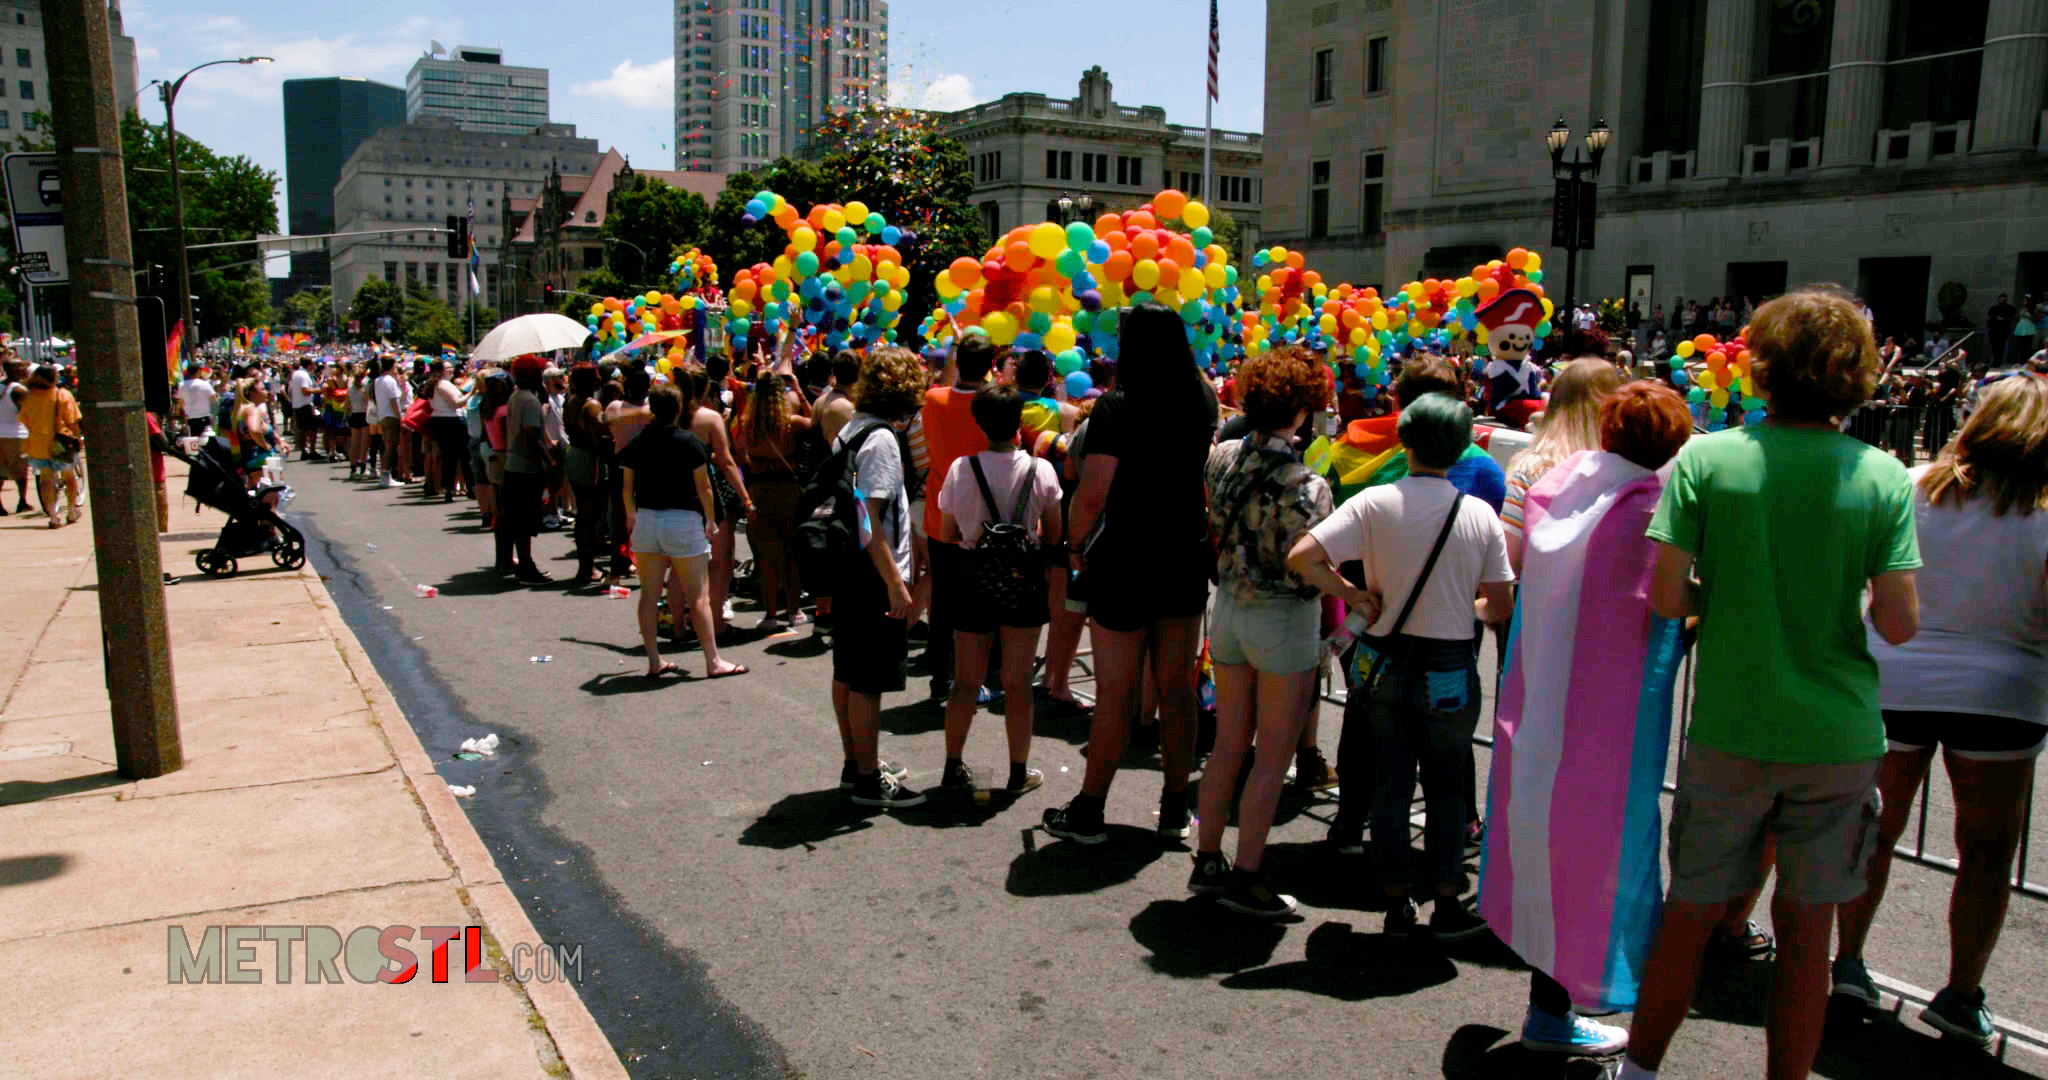 LGBT Pride takes center stage across St. Louis